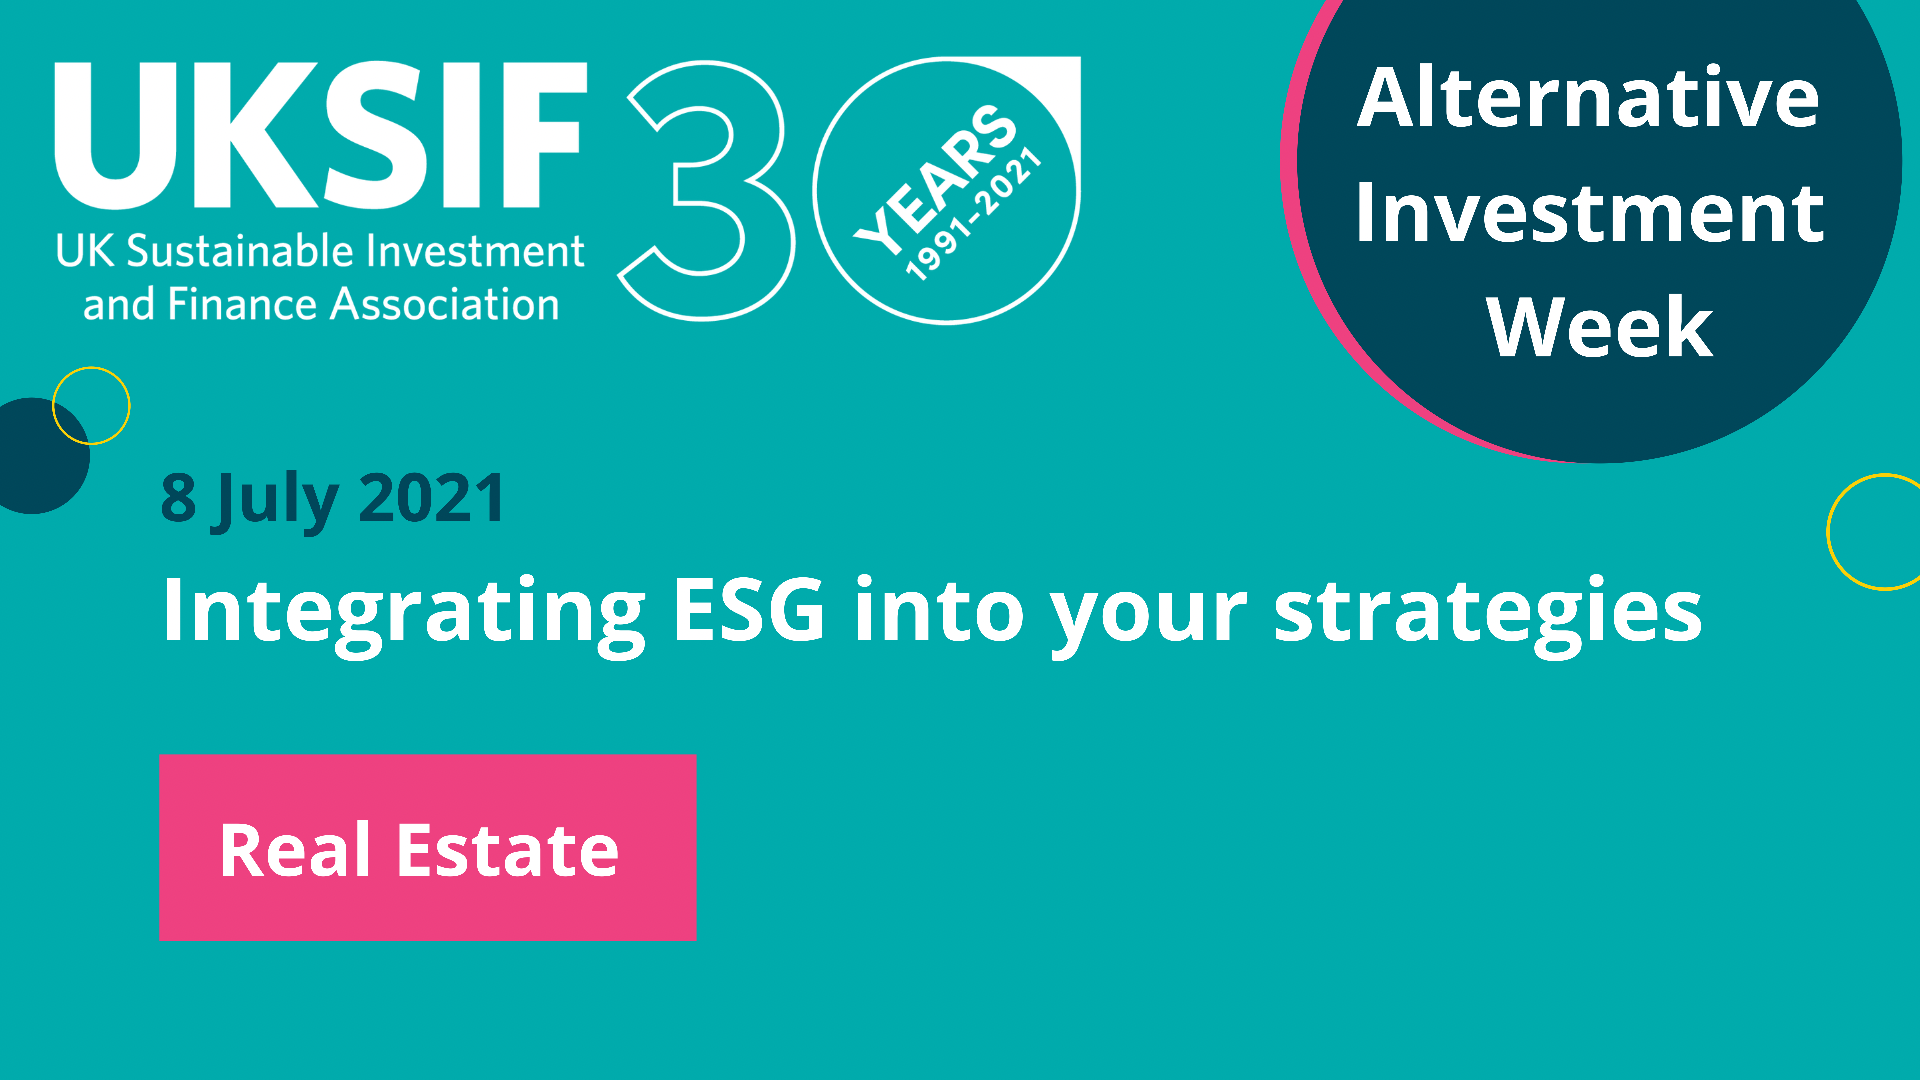 Implementing ESG in real estate strategies - Preview Image